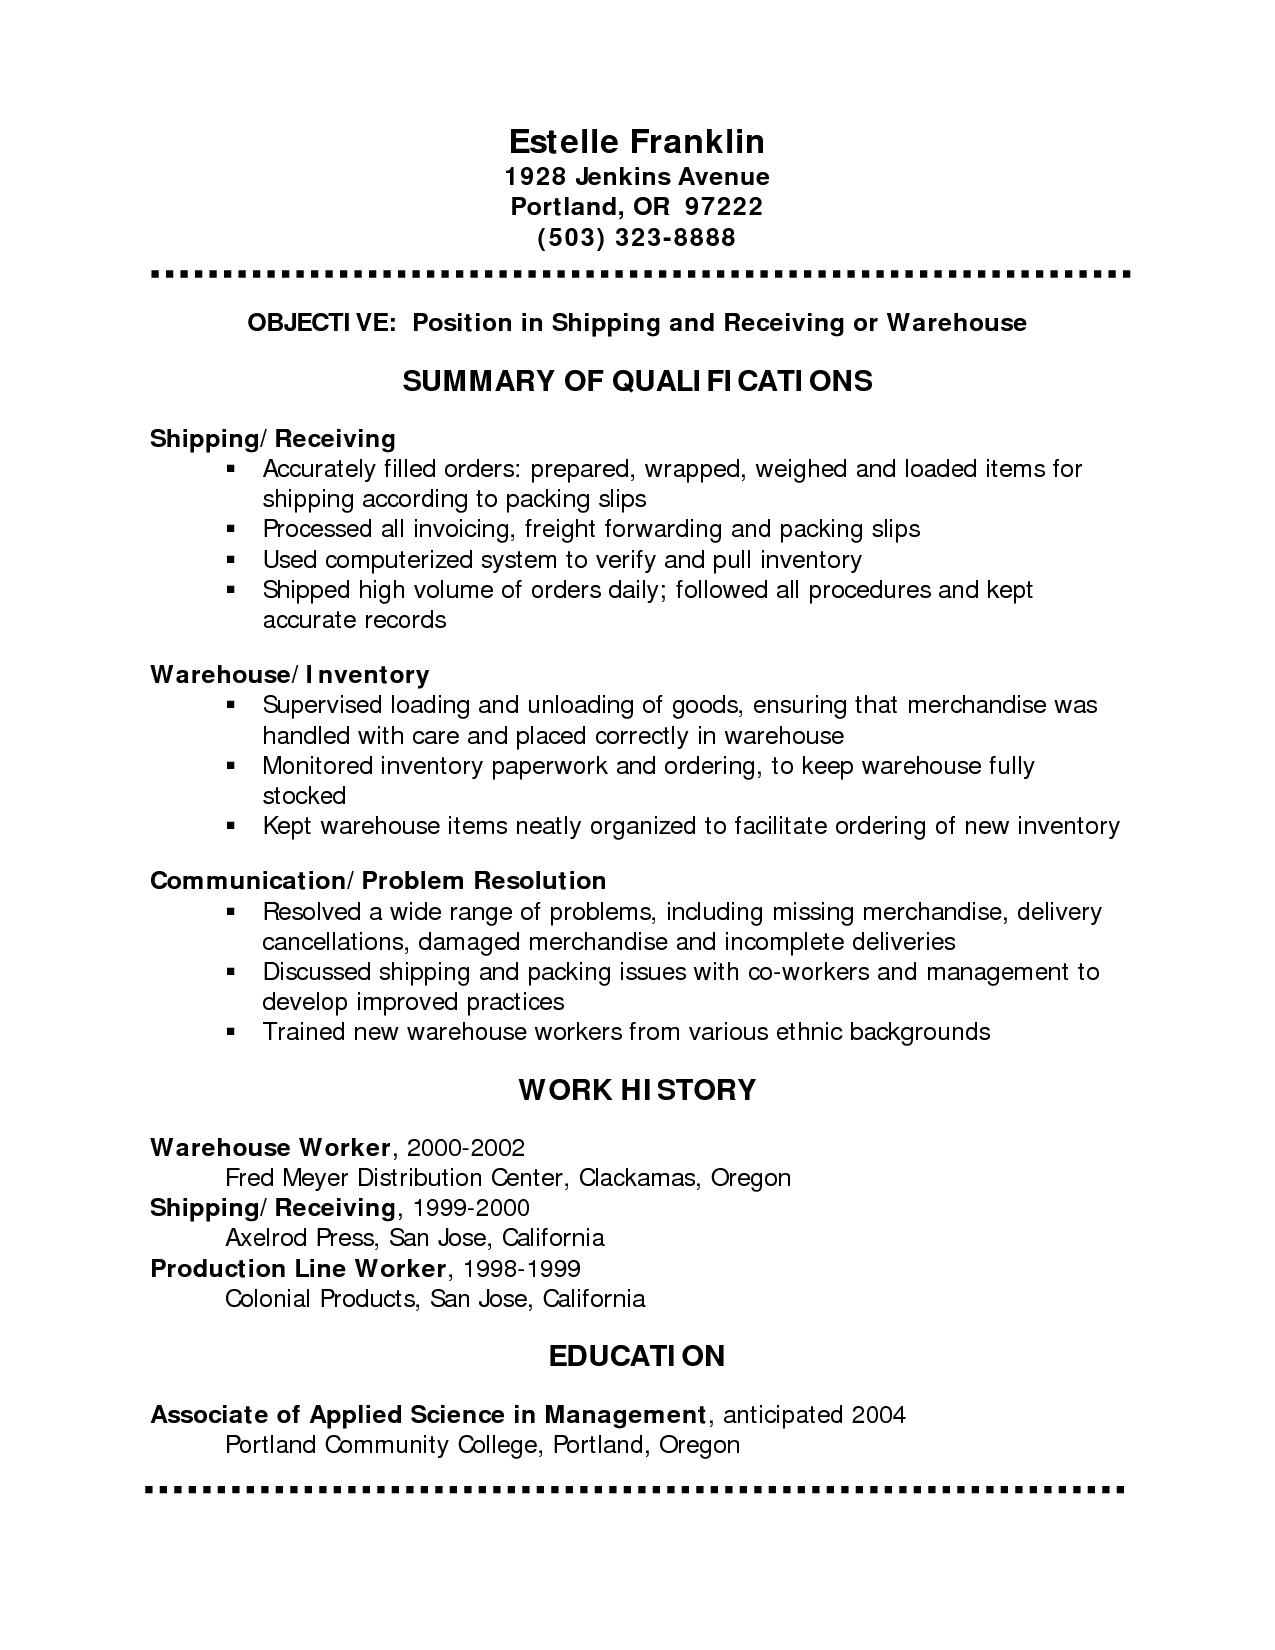 Awesome Warehouse Worker Resume Sample Resume Genius College Graduate Sample Resume  Examples Of A Good Essay Introduction Dental Hygiene Cover Letter Samples  Lawyer ...  Sample Resume Templates